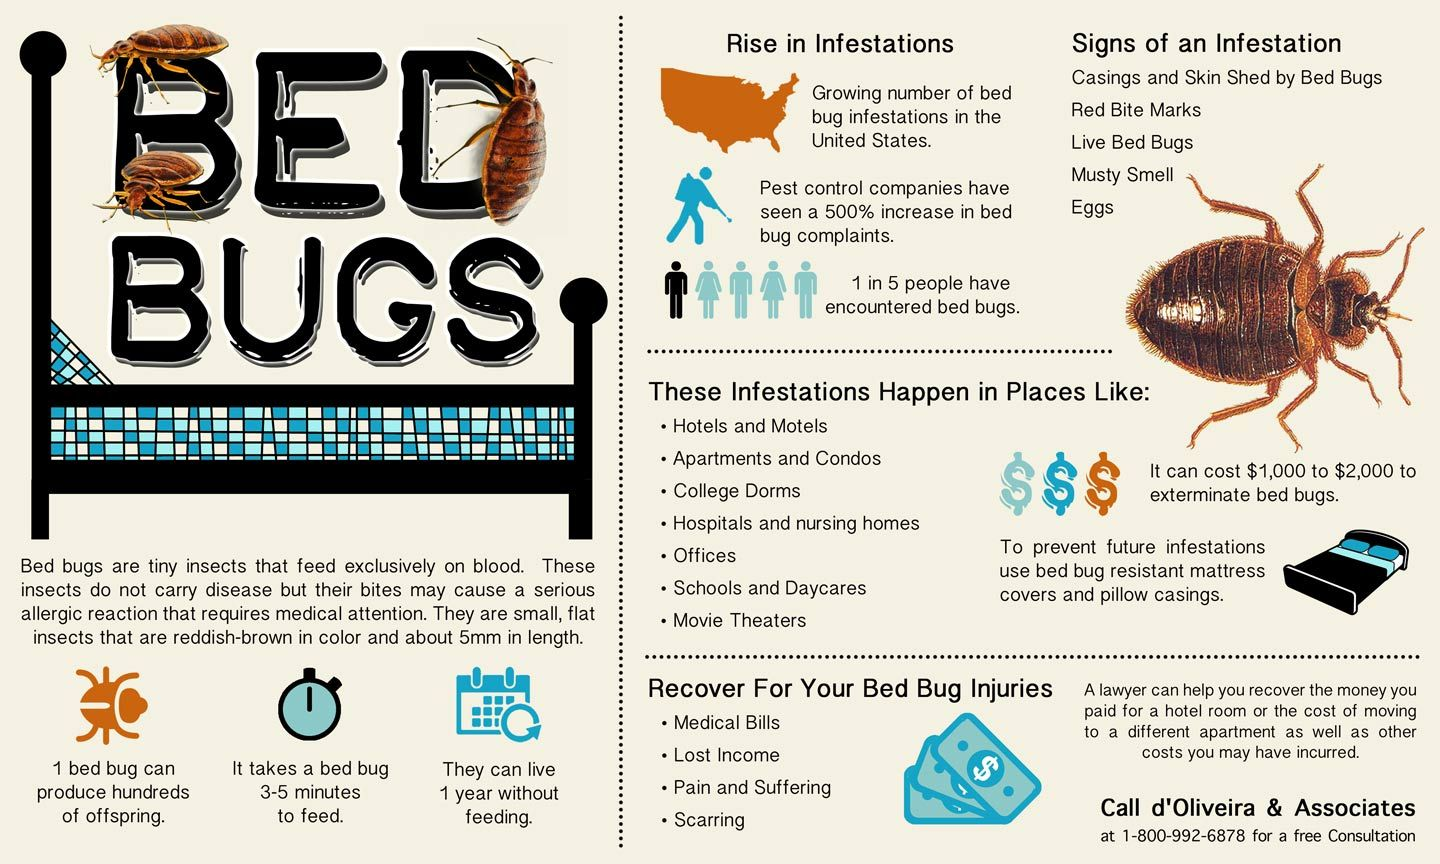 bed bugs infographic reviews signs and common locations of